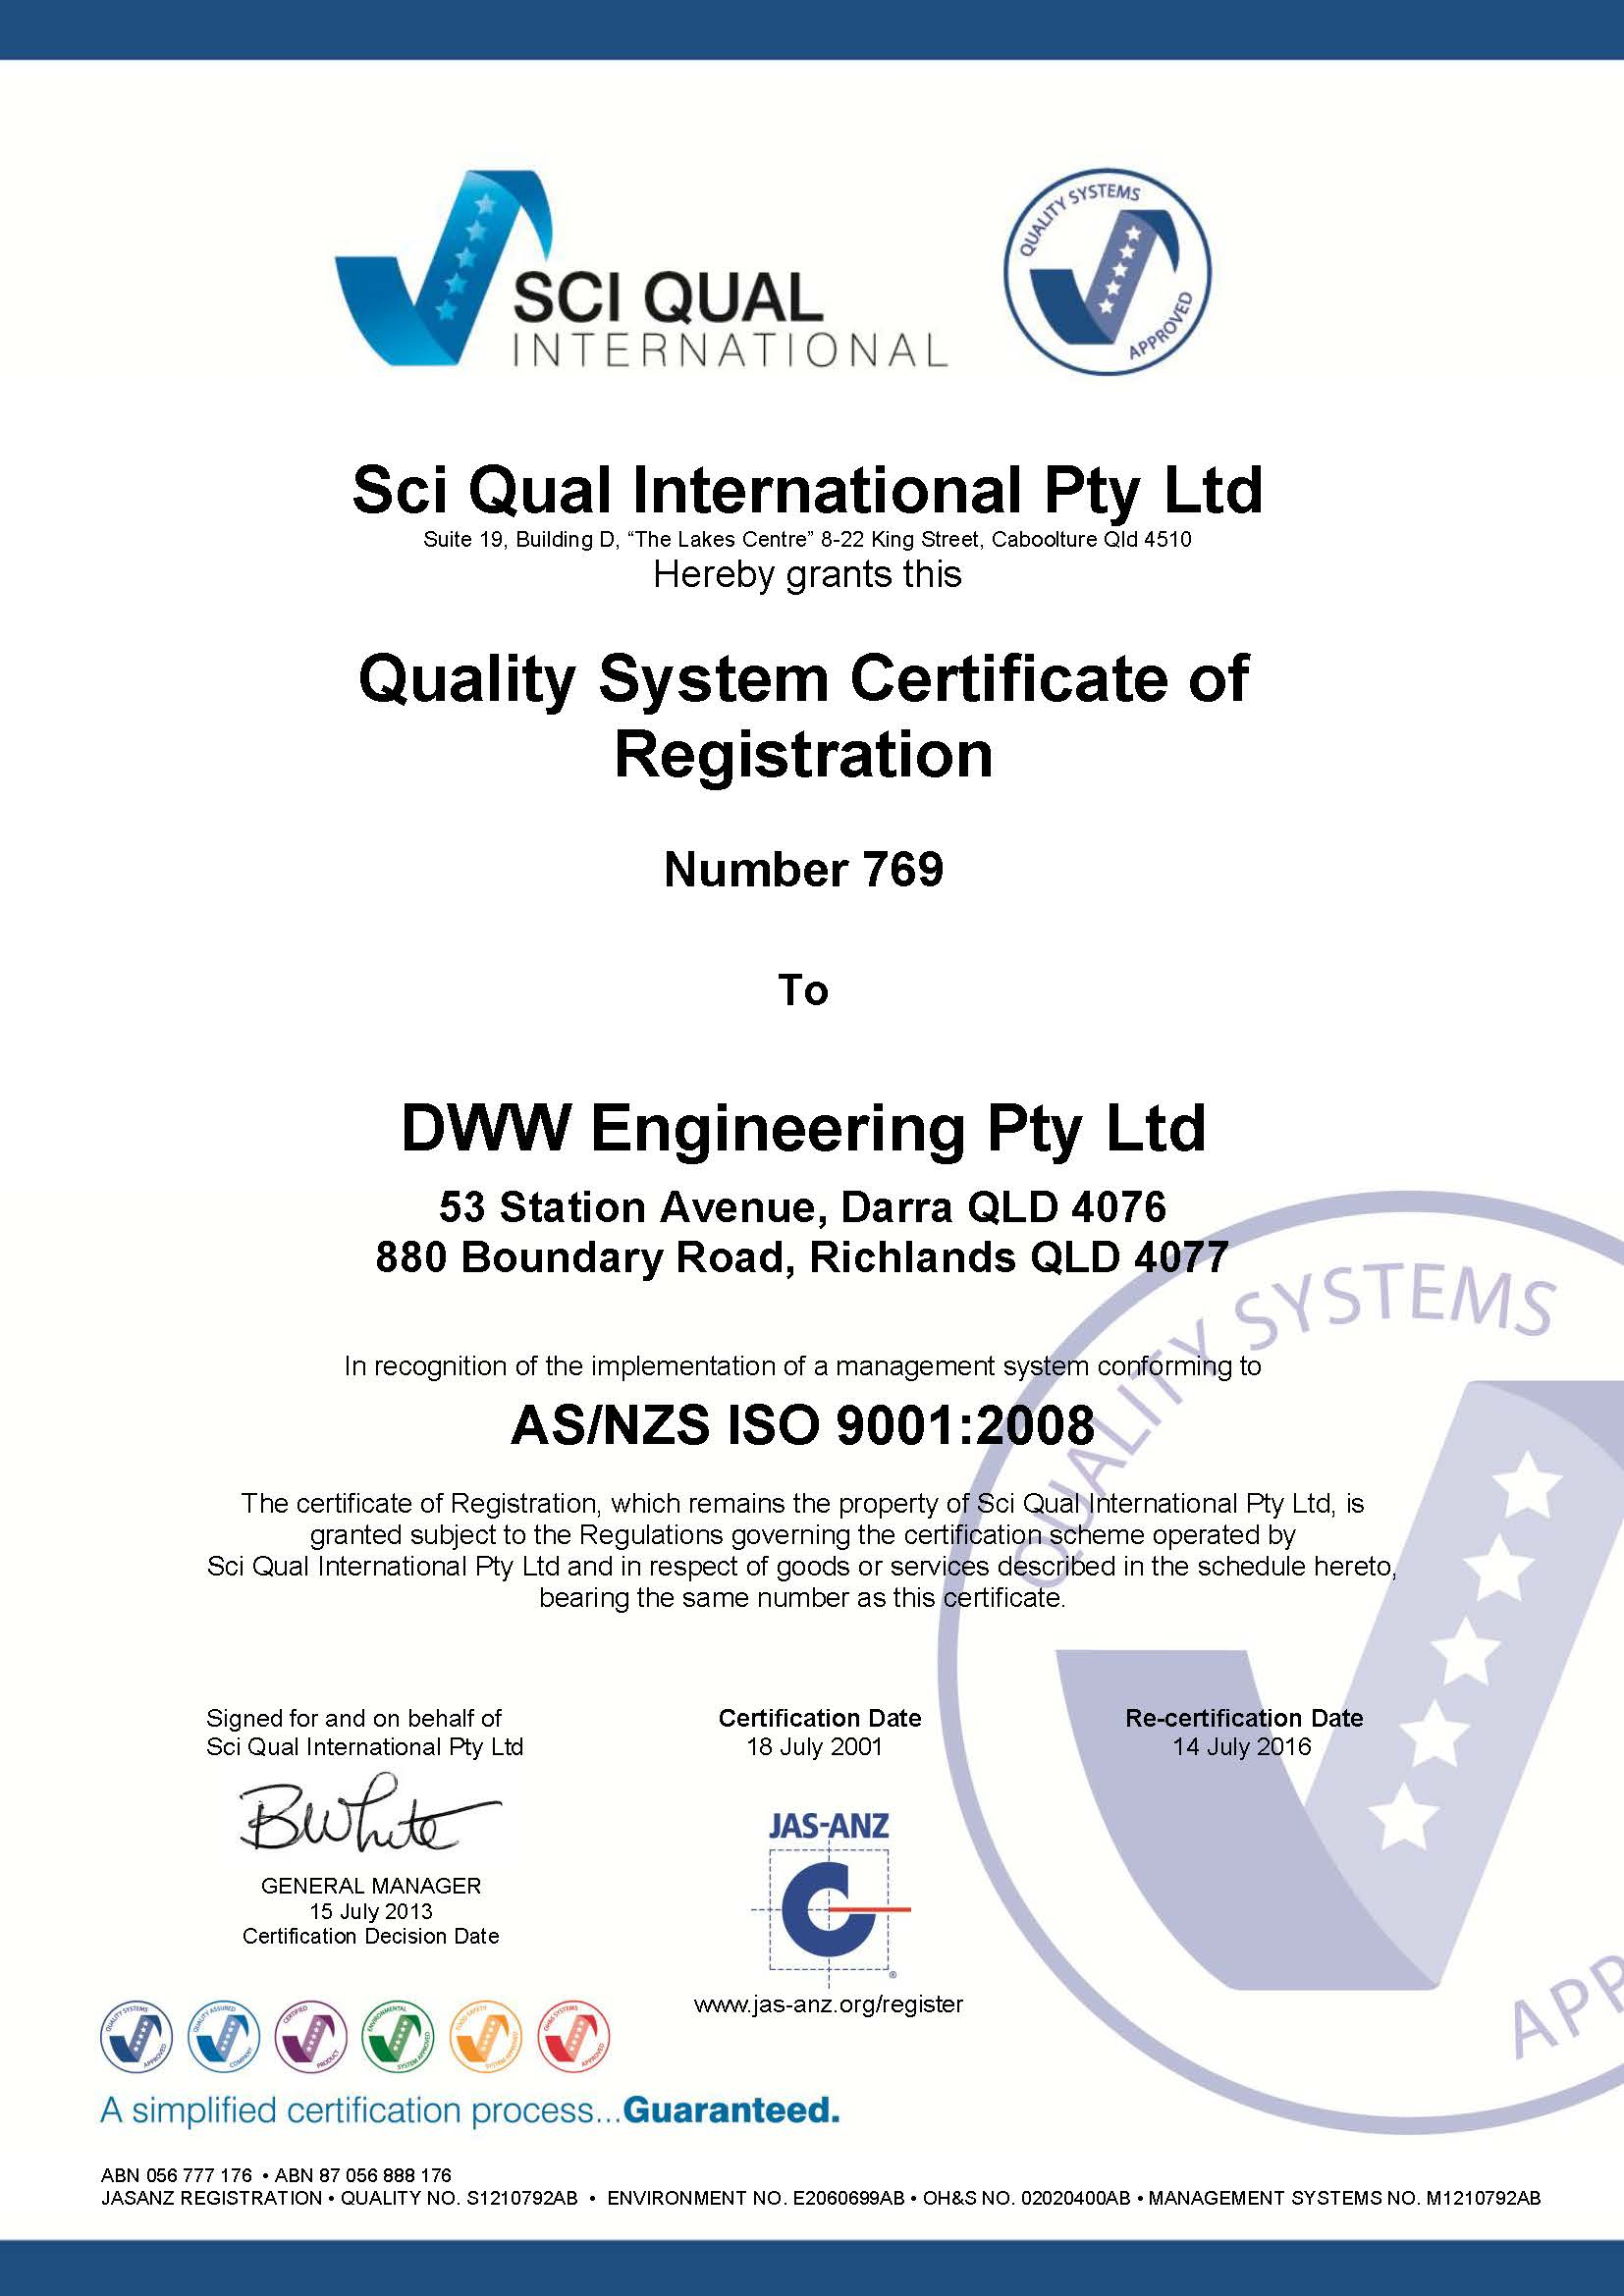 Qa Certificate Untill 2016page1 Dww Engineering